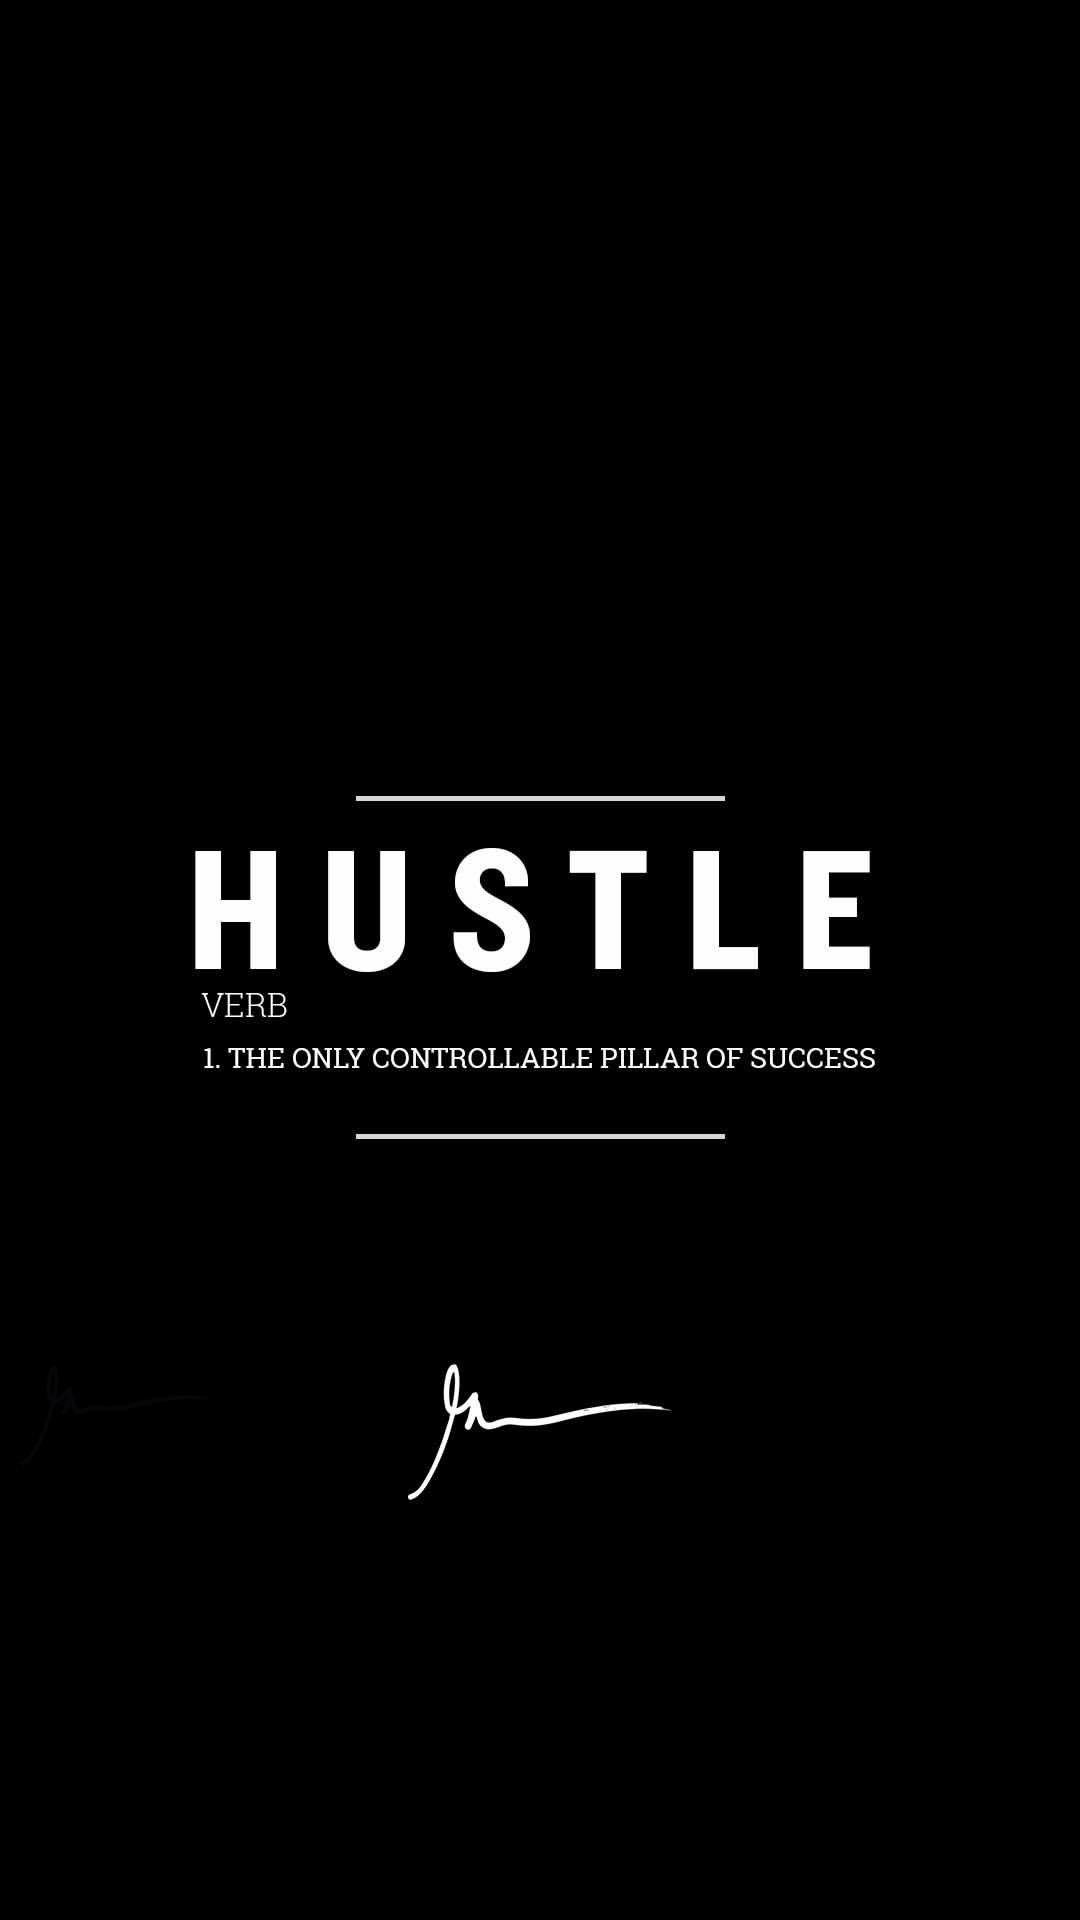 Gary Vaynerchuk Iphone Wallpaper posted by Zoey Anderson